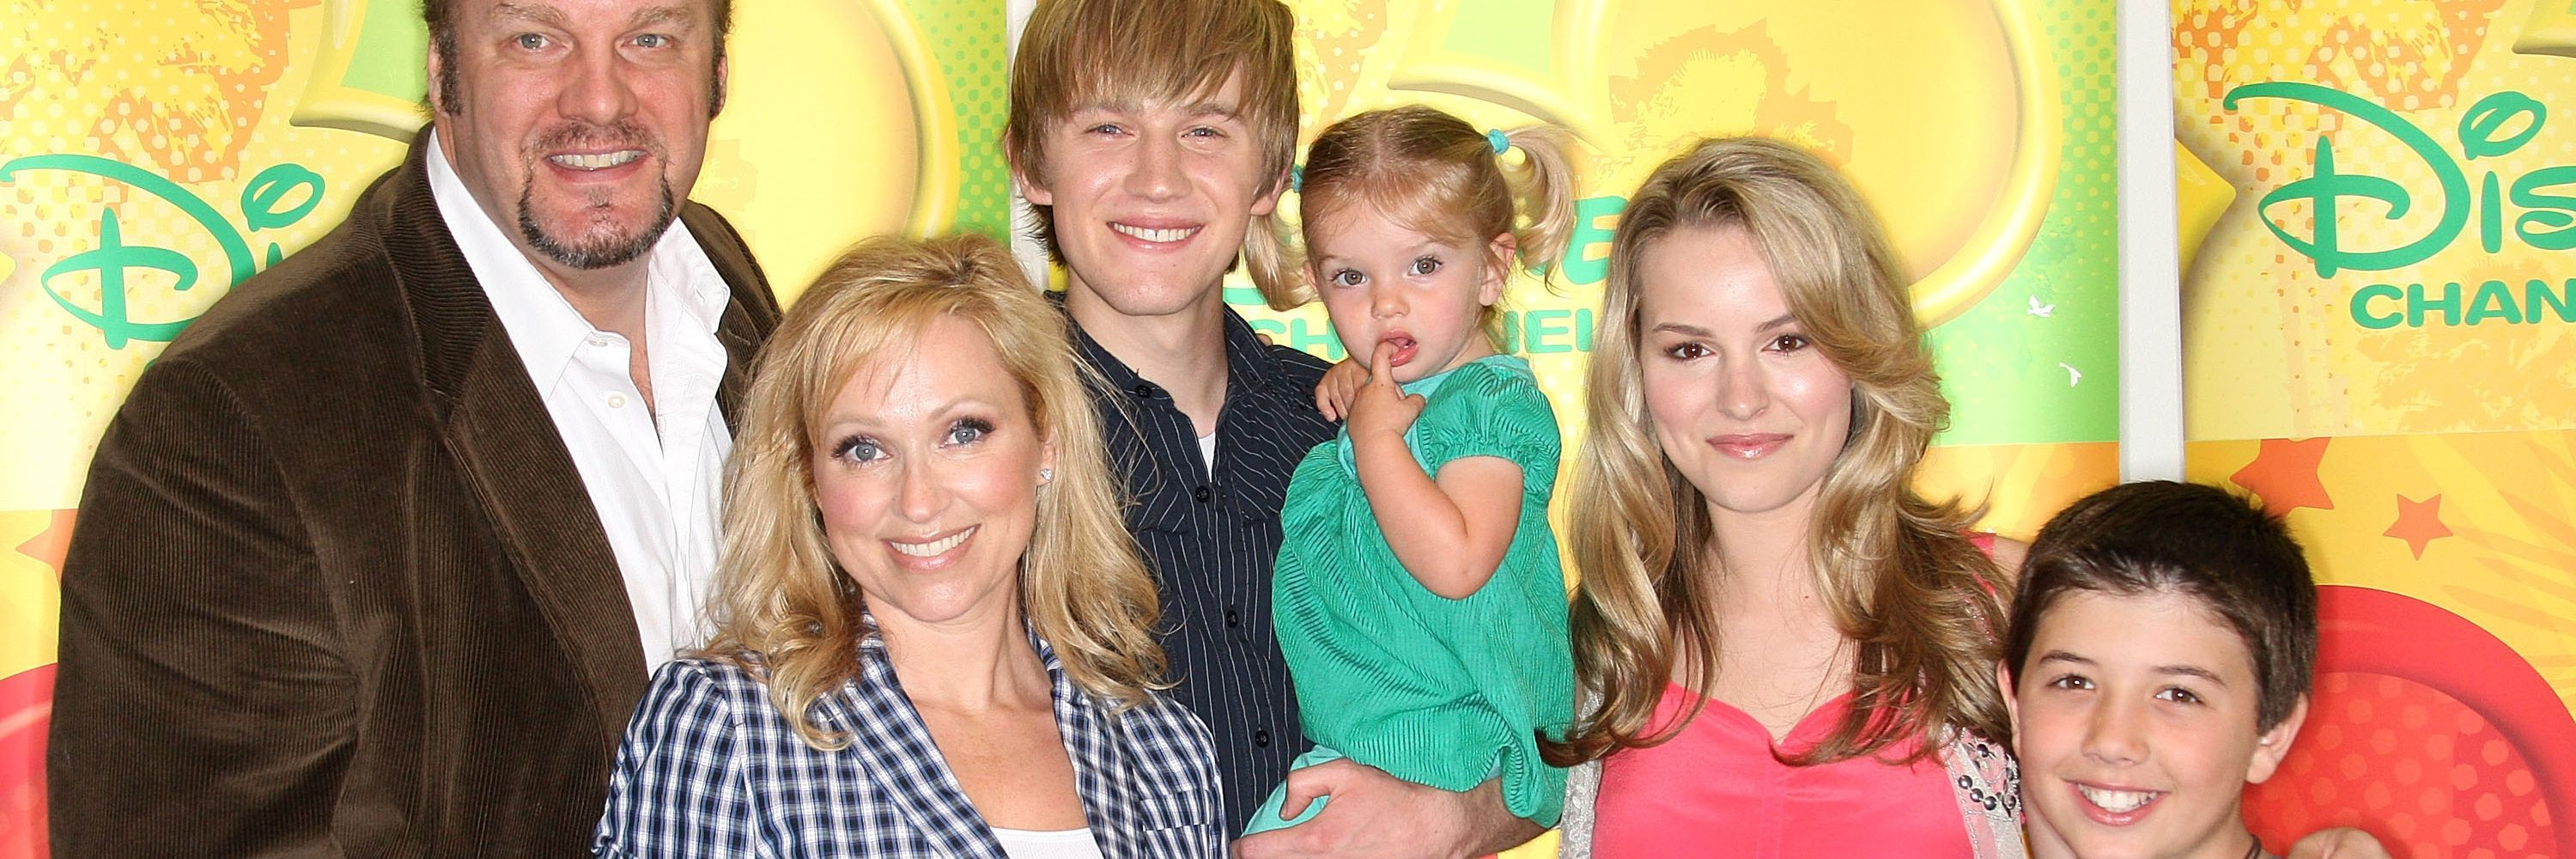 Nico liersch family - Here S What The Adorable Baby From Good Luck Charlie Looks Like Now Mtv